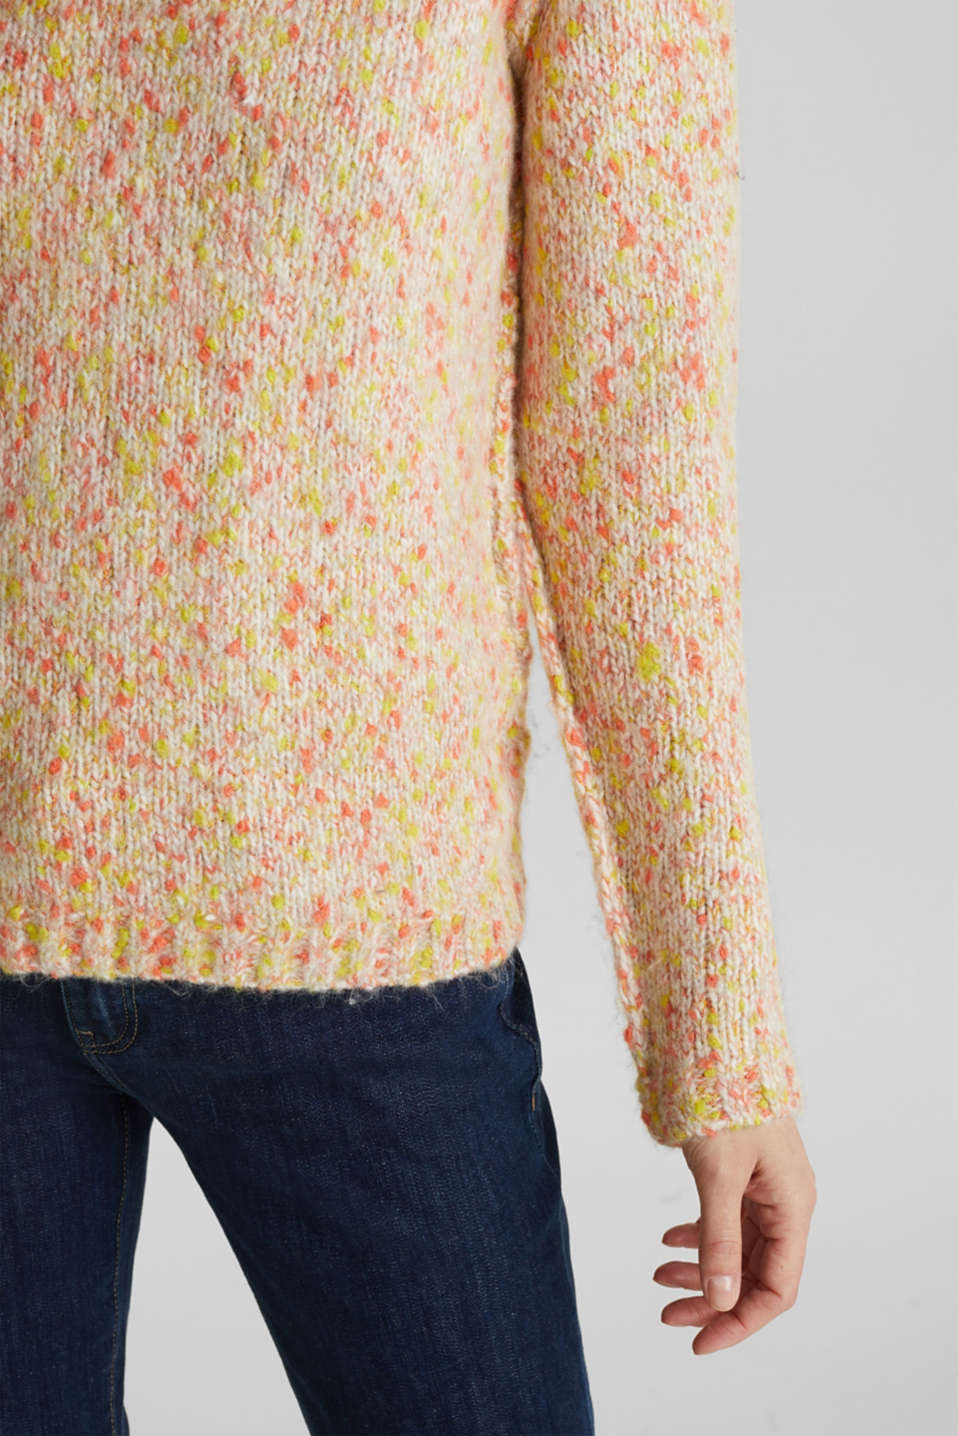 Wool blend: jumper with a dimpled texture, BEIGE, detail image number 5